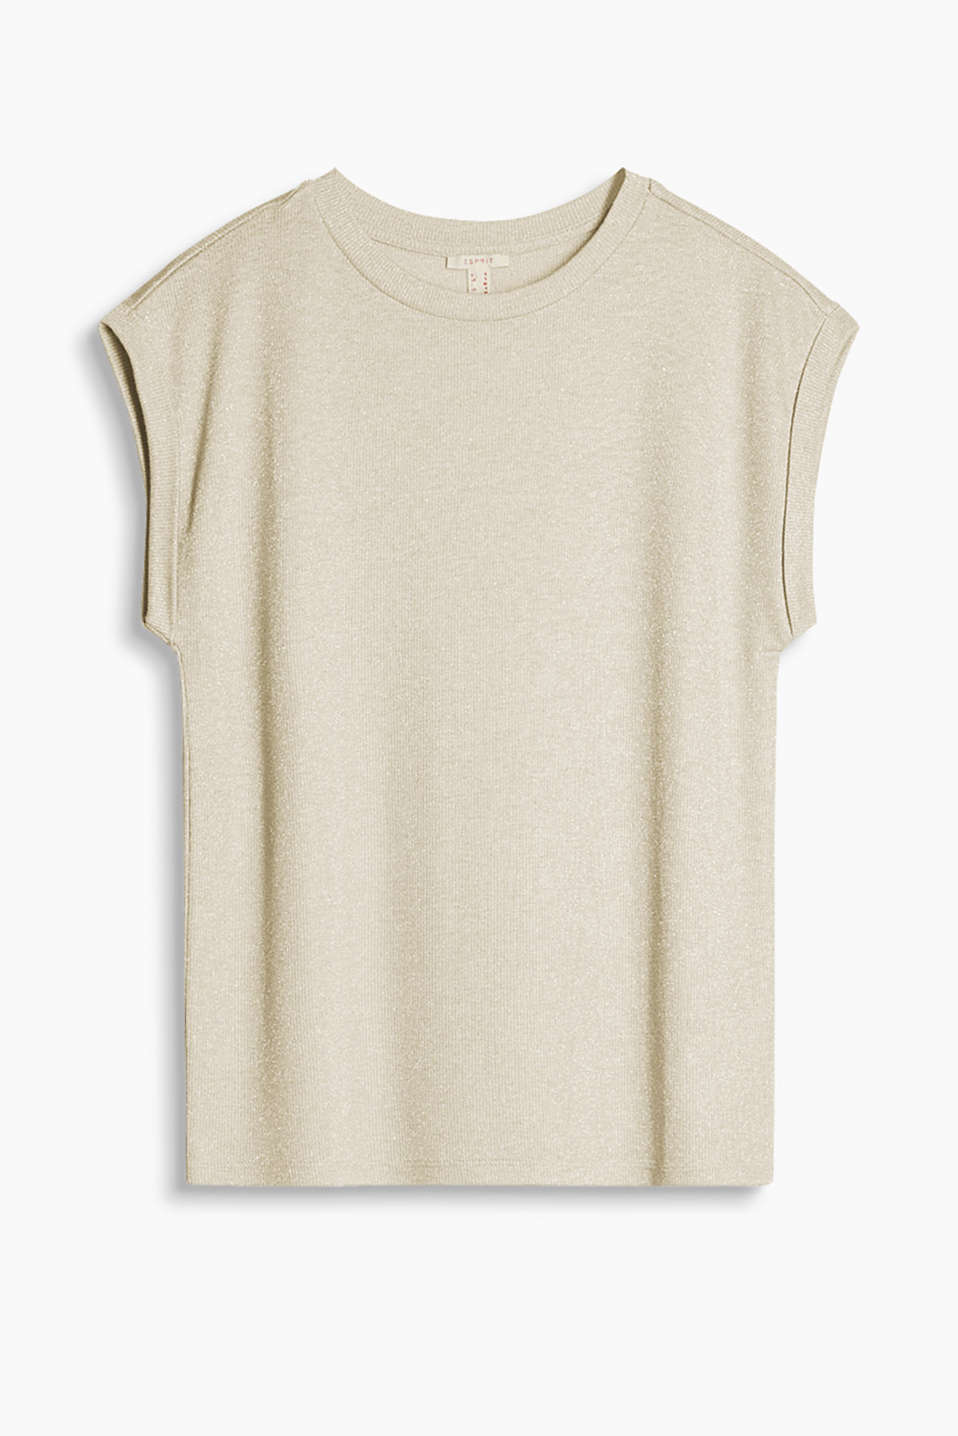 Loosely draped lurex top with dragonfly-style sleeves and added stretch for comfort